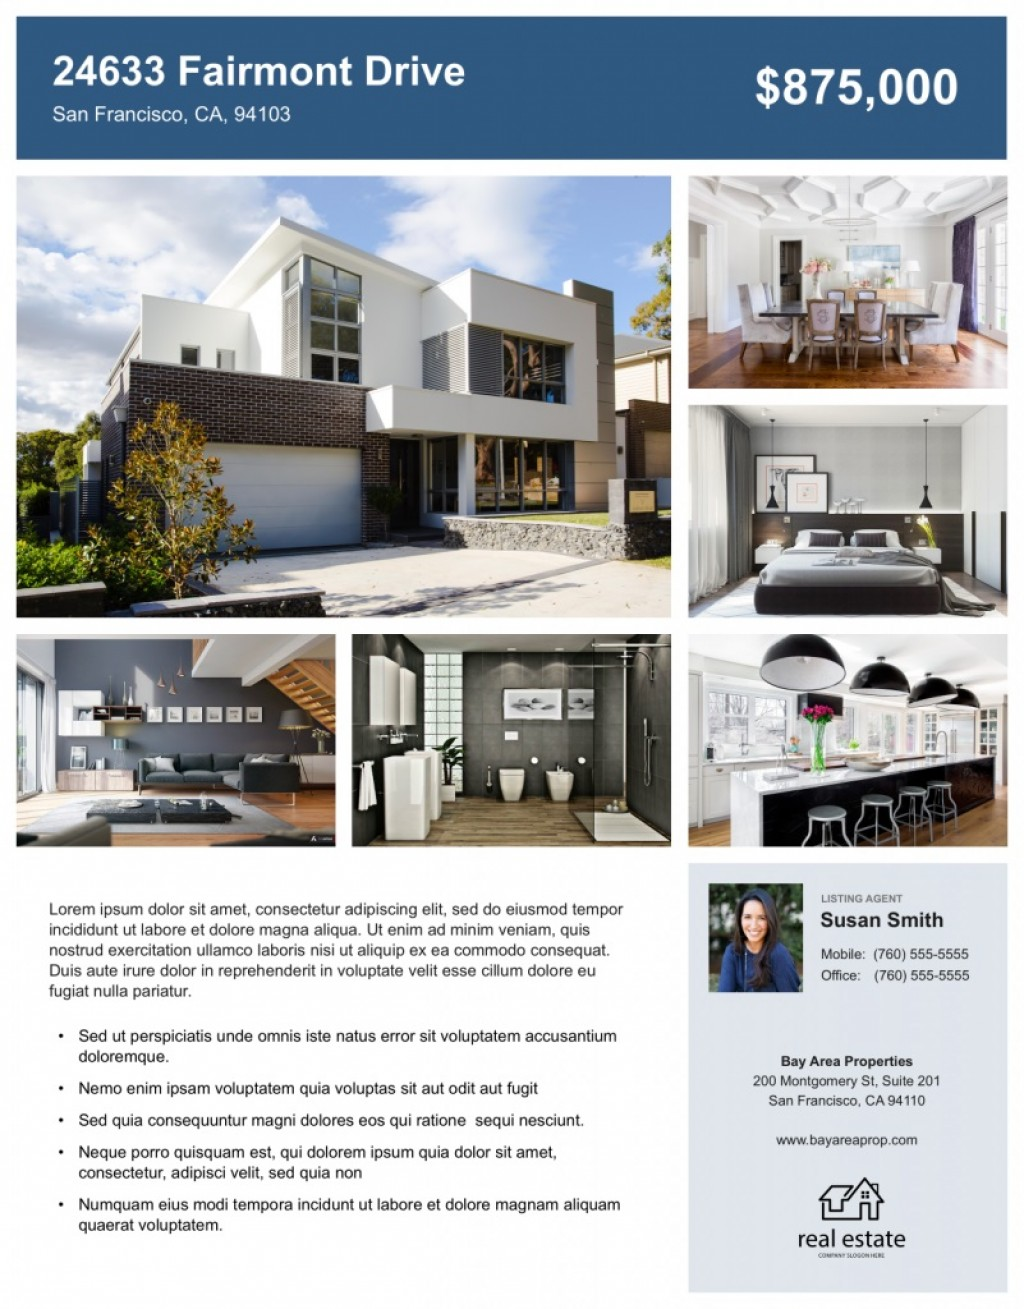 006 Unique Real Estate Advertising Template Example  Facebook Ad CraigslistLarge